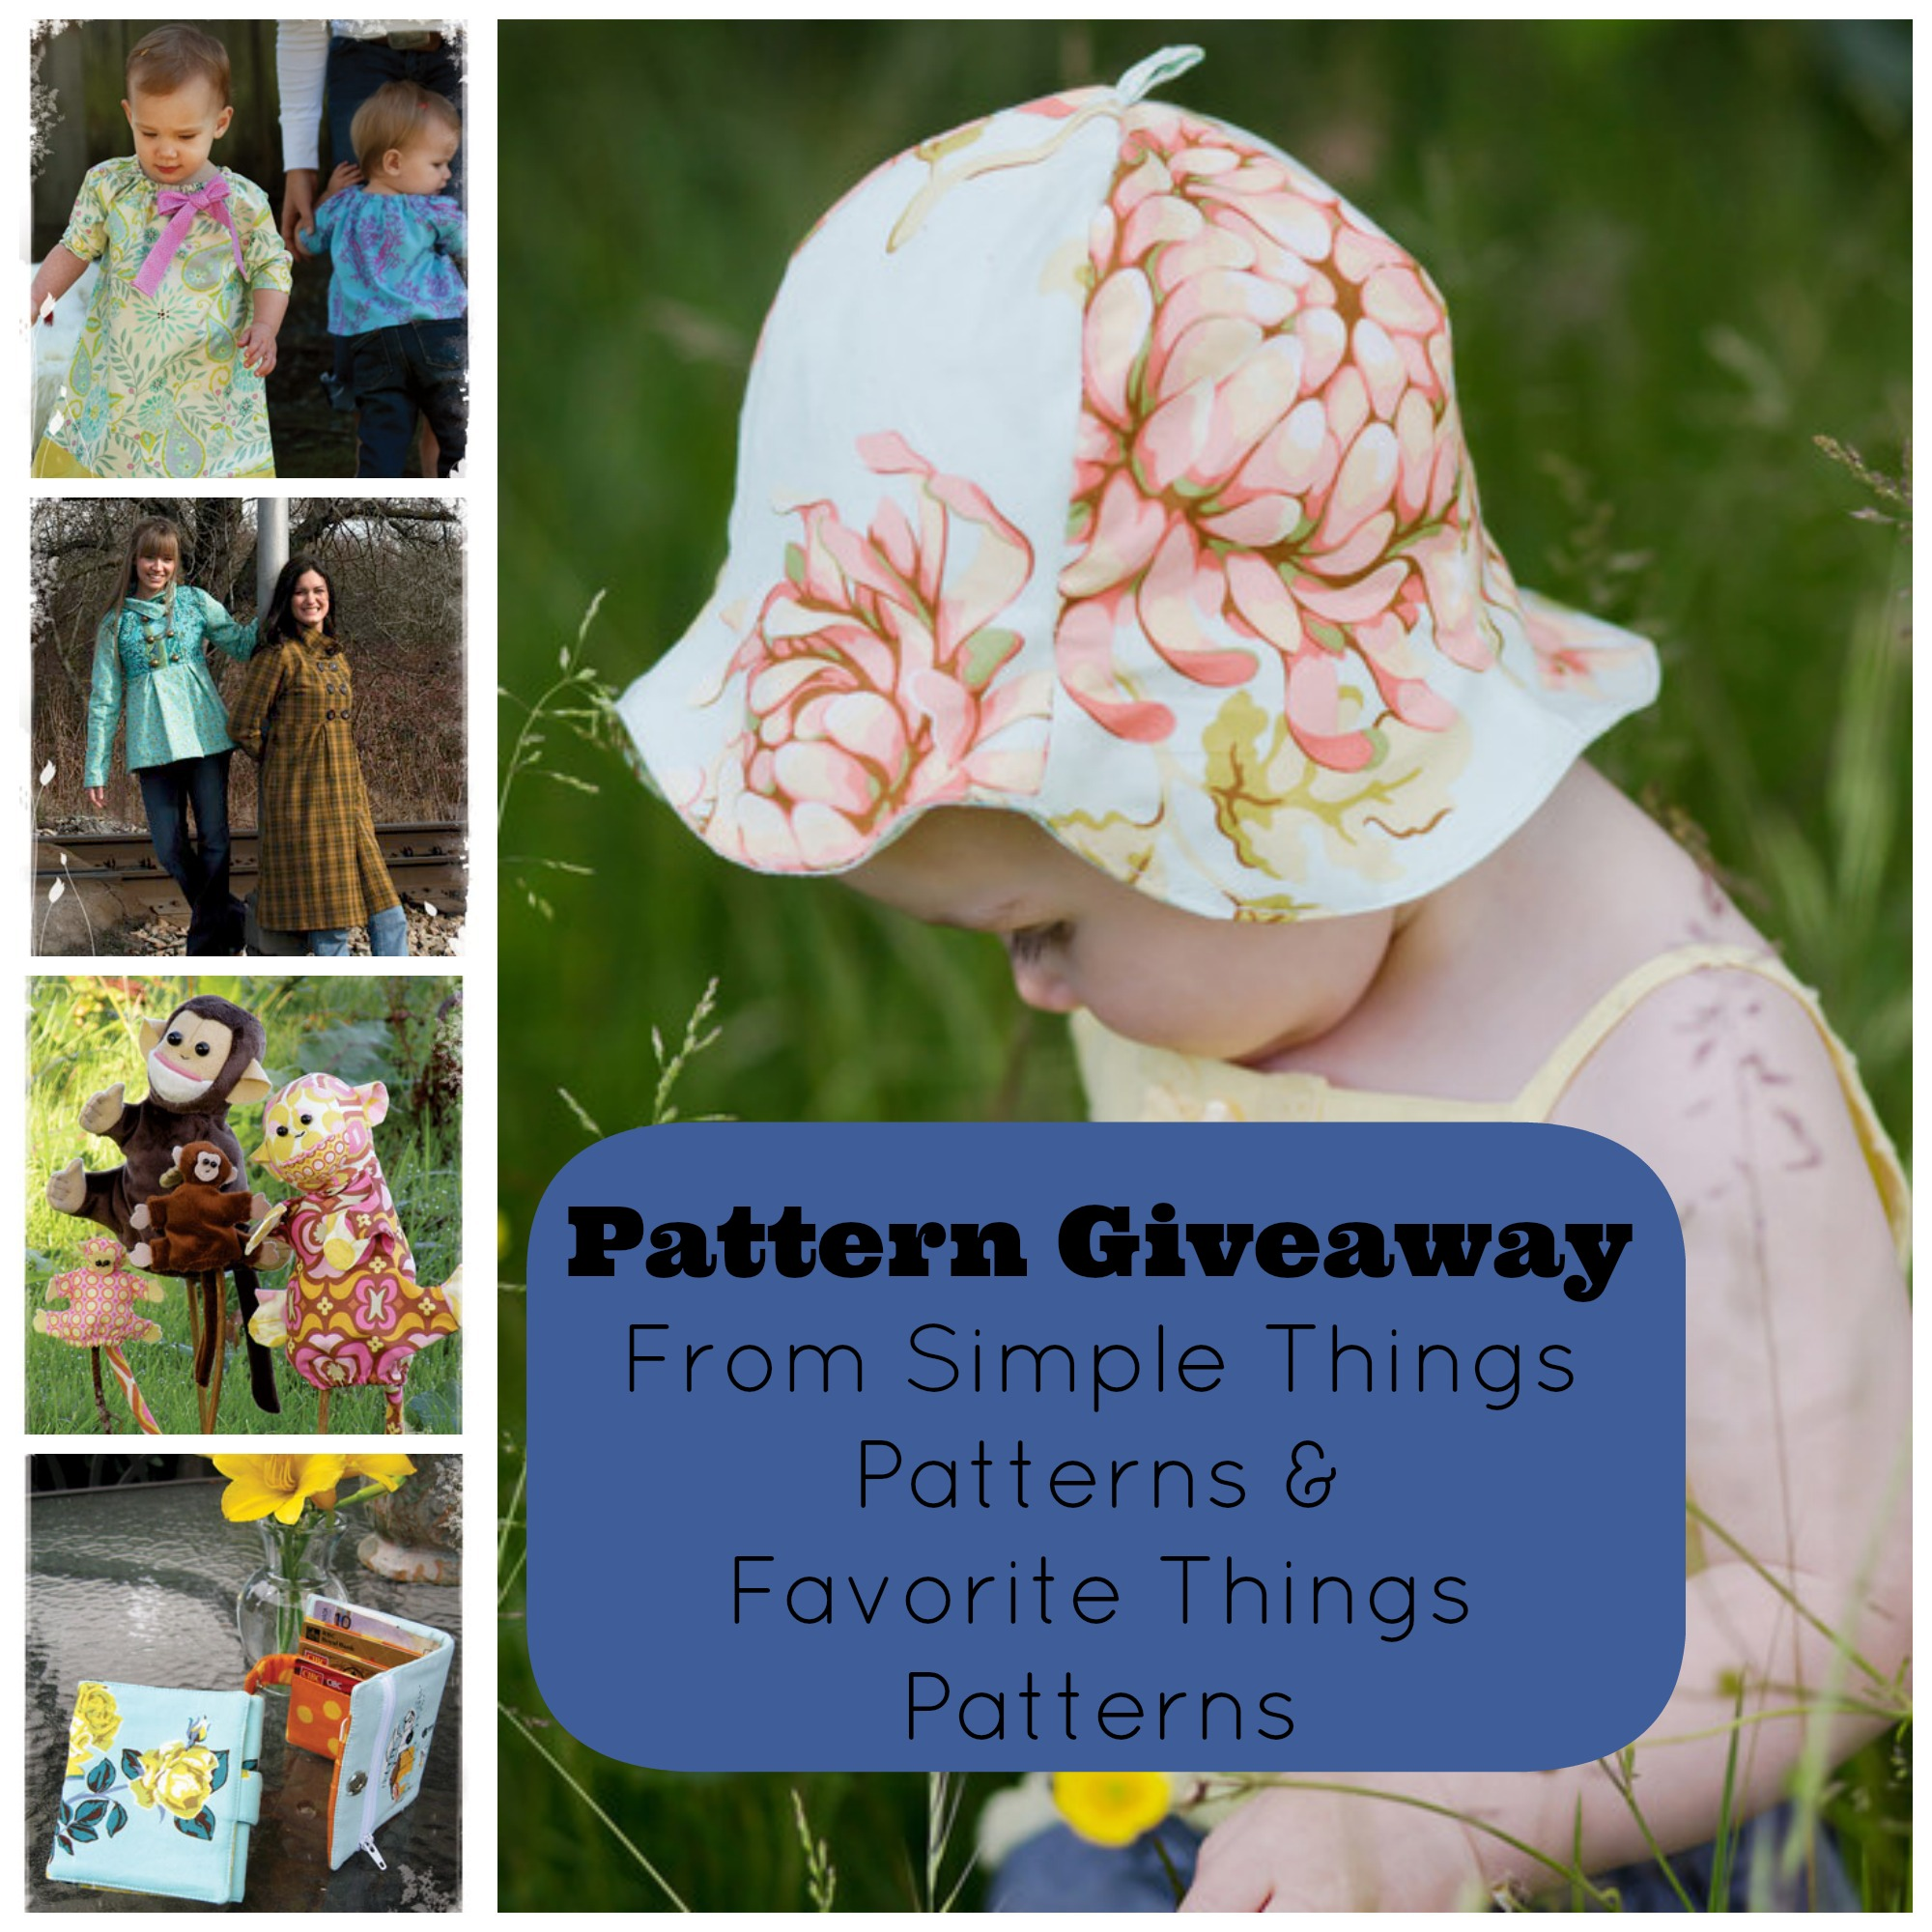 Review giveaway from simple things patterns hello for Simple creative things